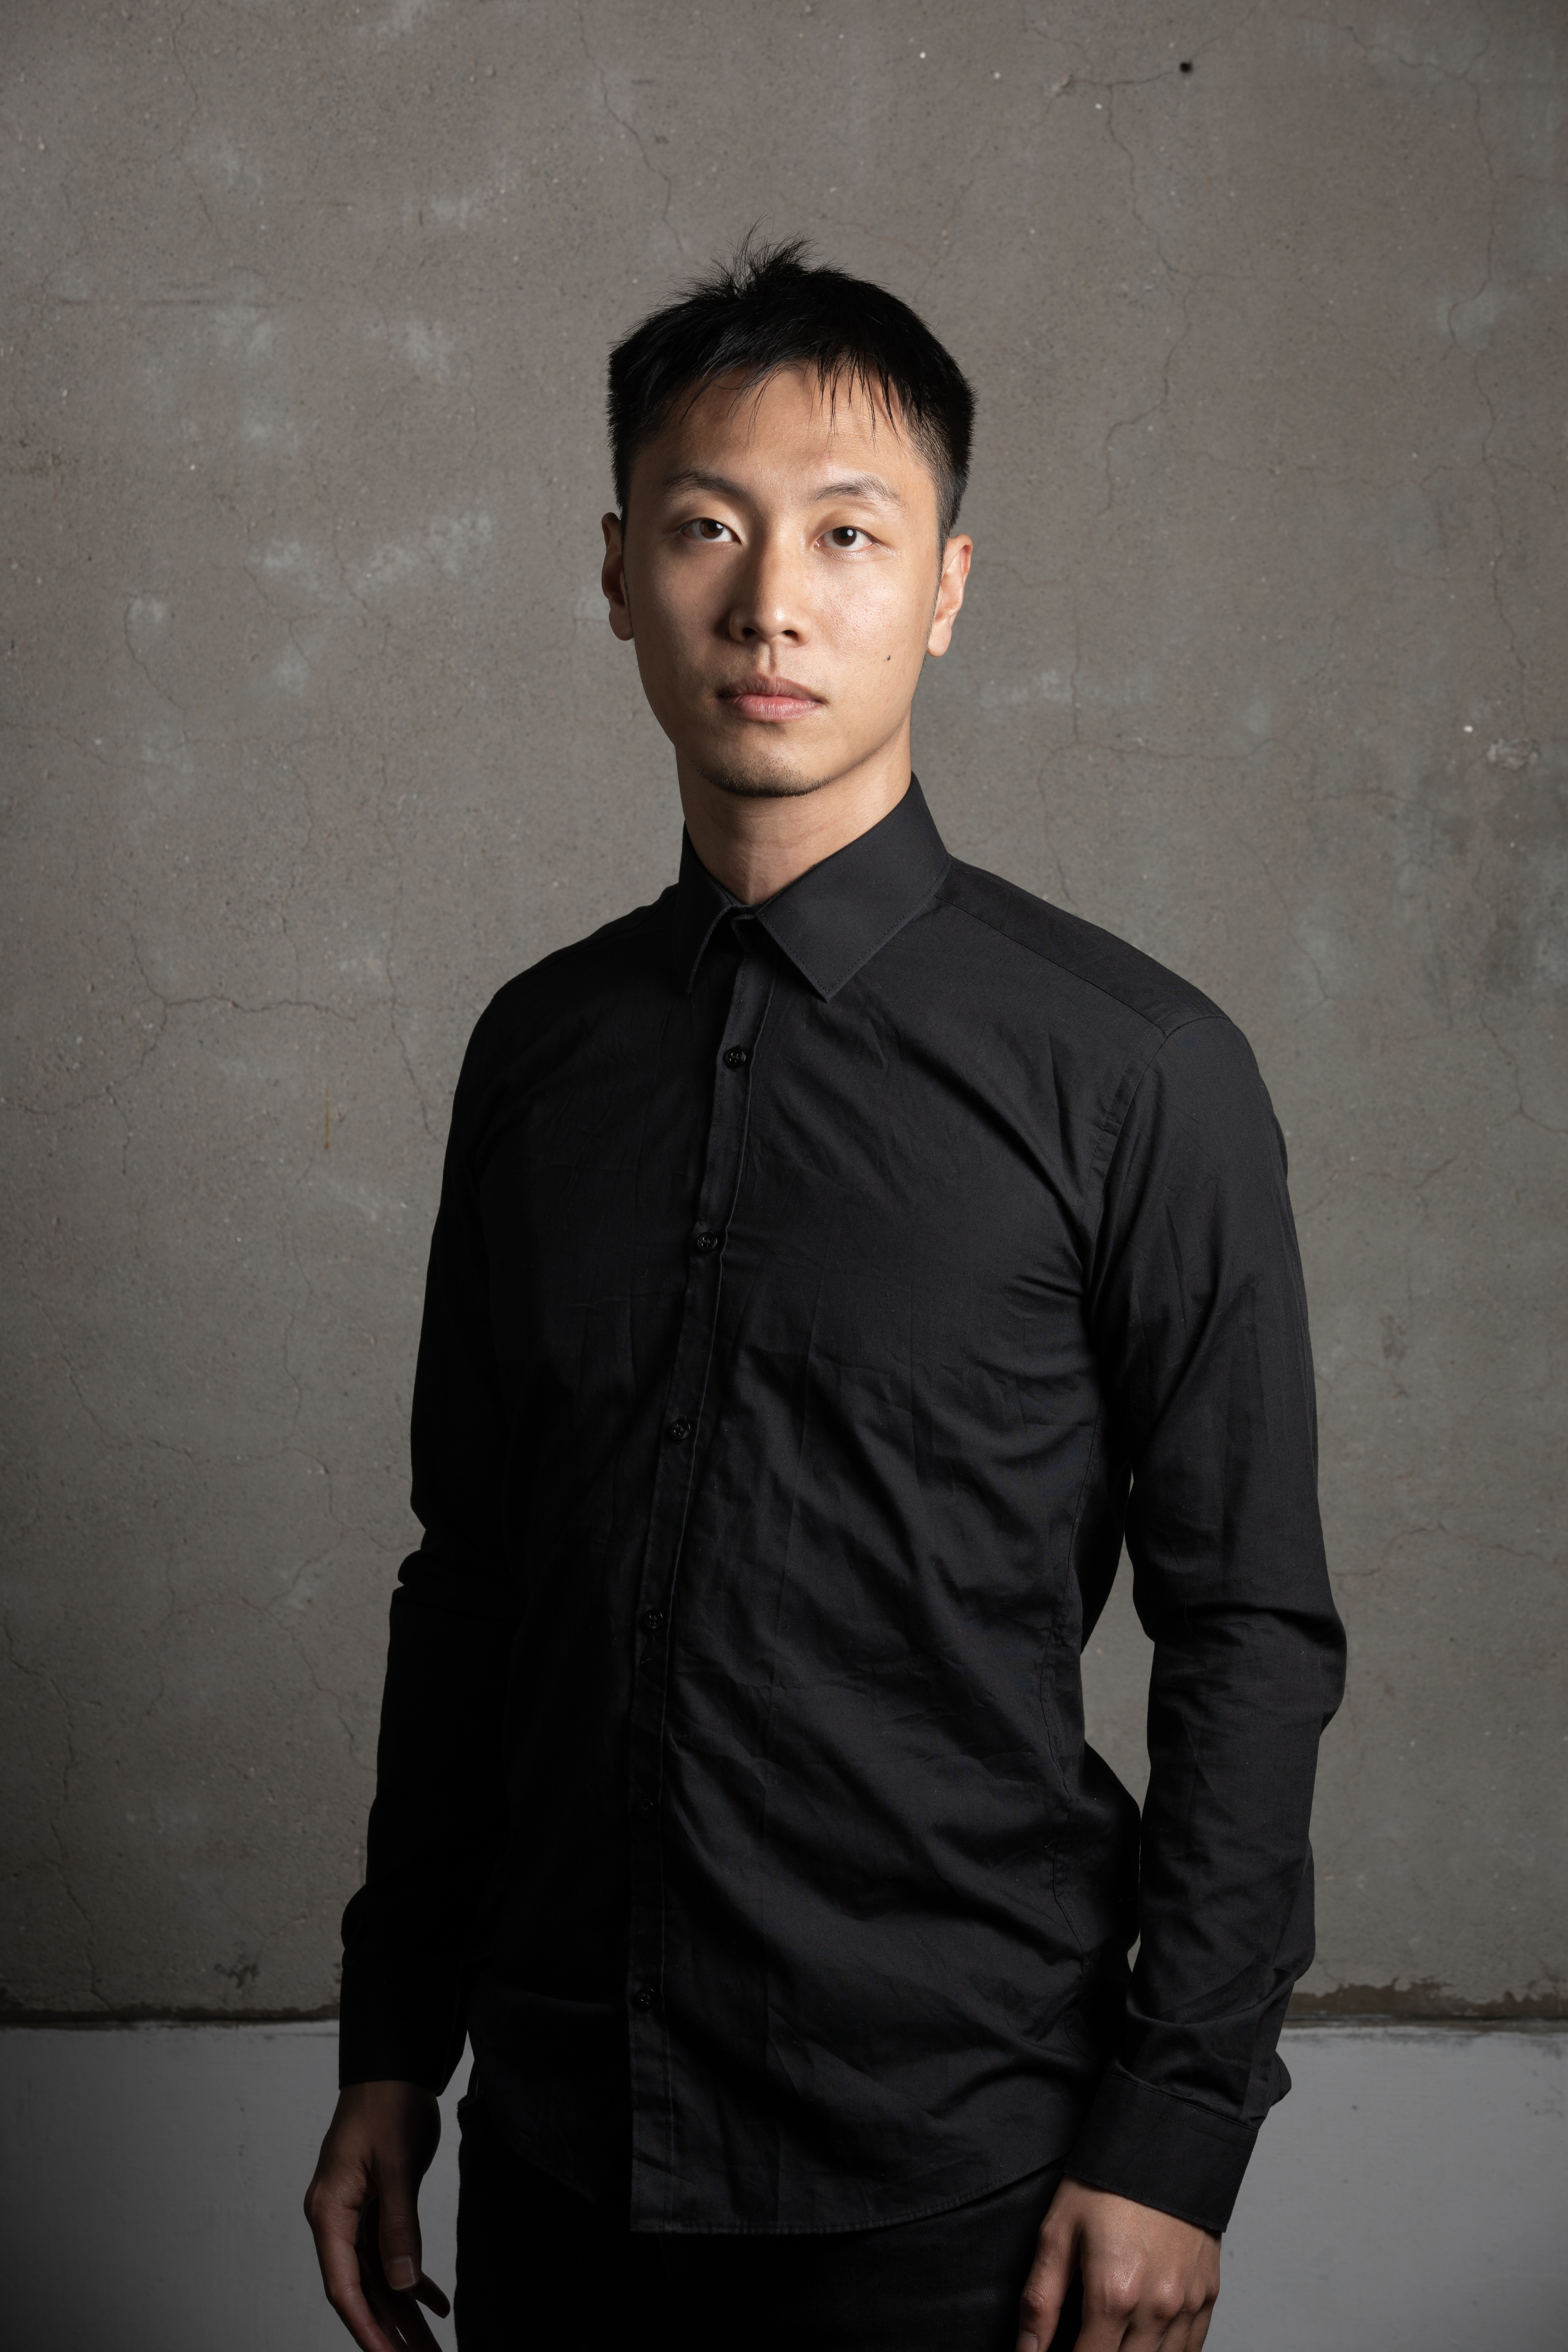 Director James Chan Tai-yin maintains a collaborative relationship with the actresses, with whom he discusses frequently the interpretation of the text to fine-tune the acting